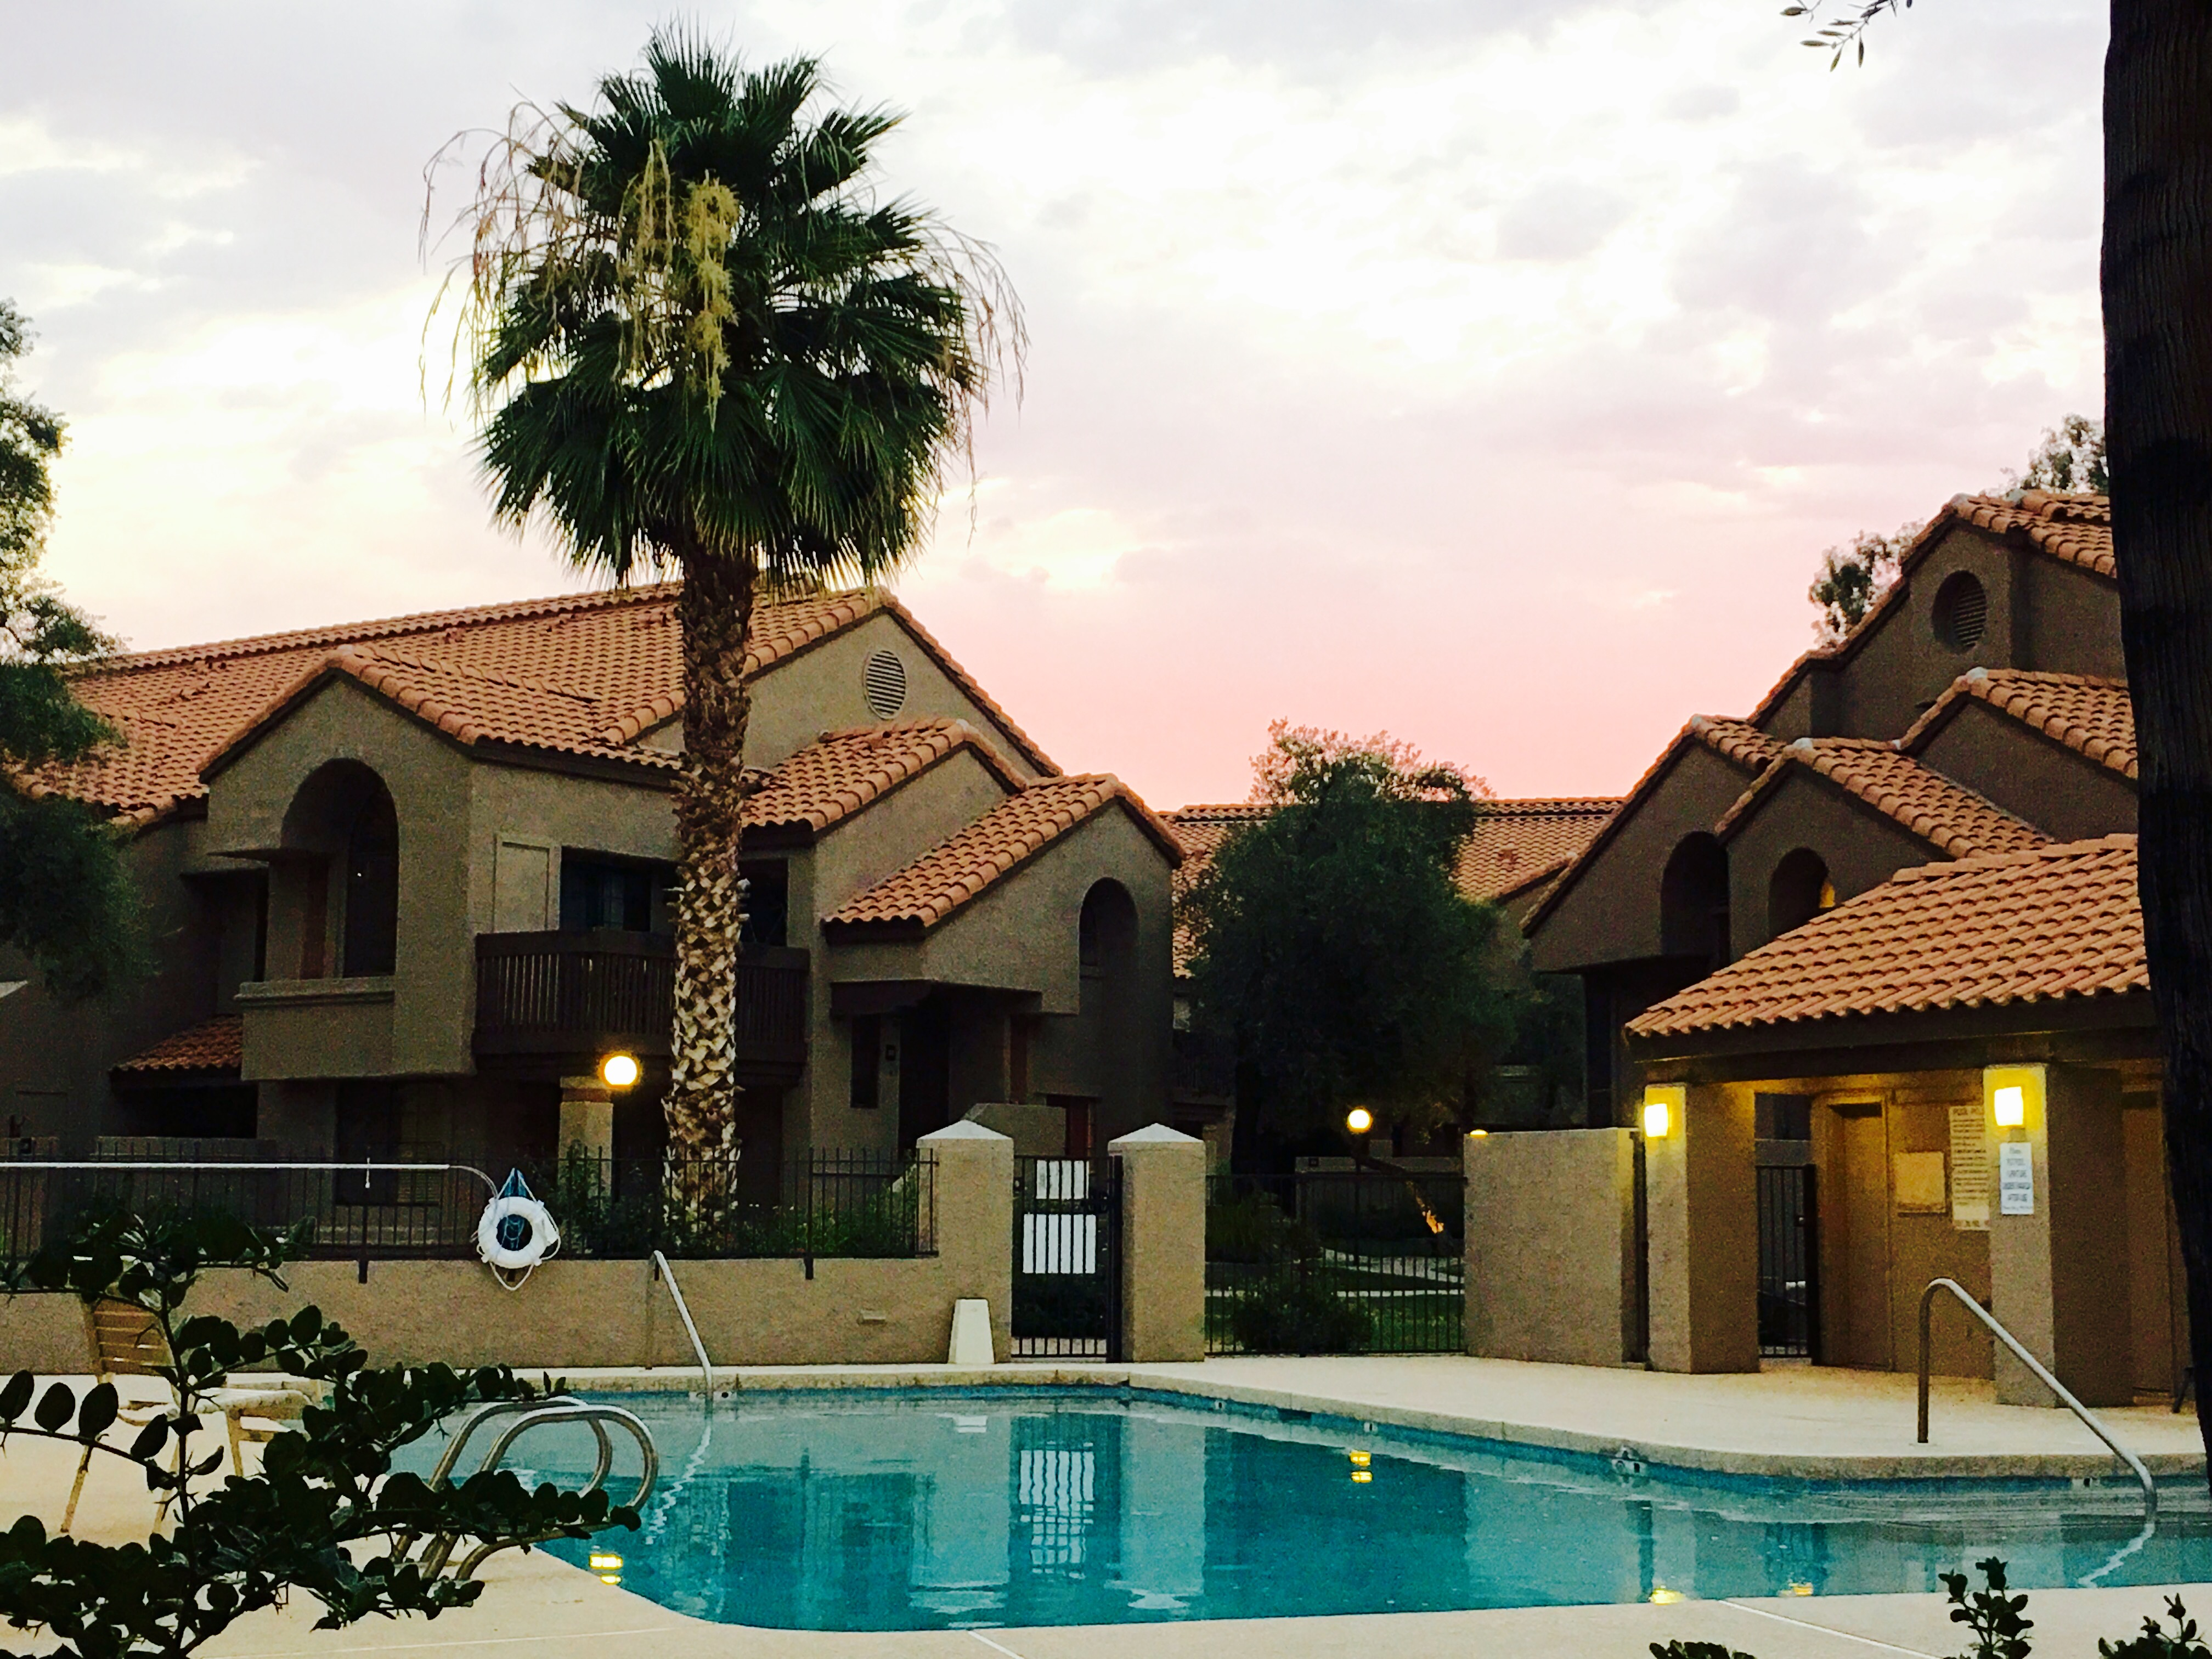 papago park village condos in tempe az 85281 review and info